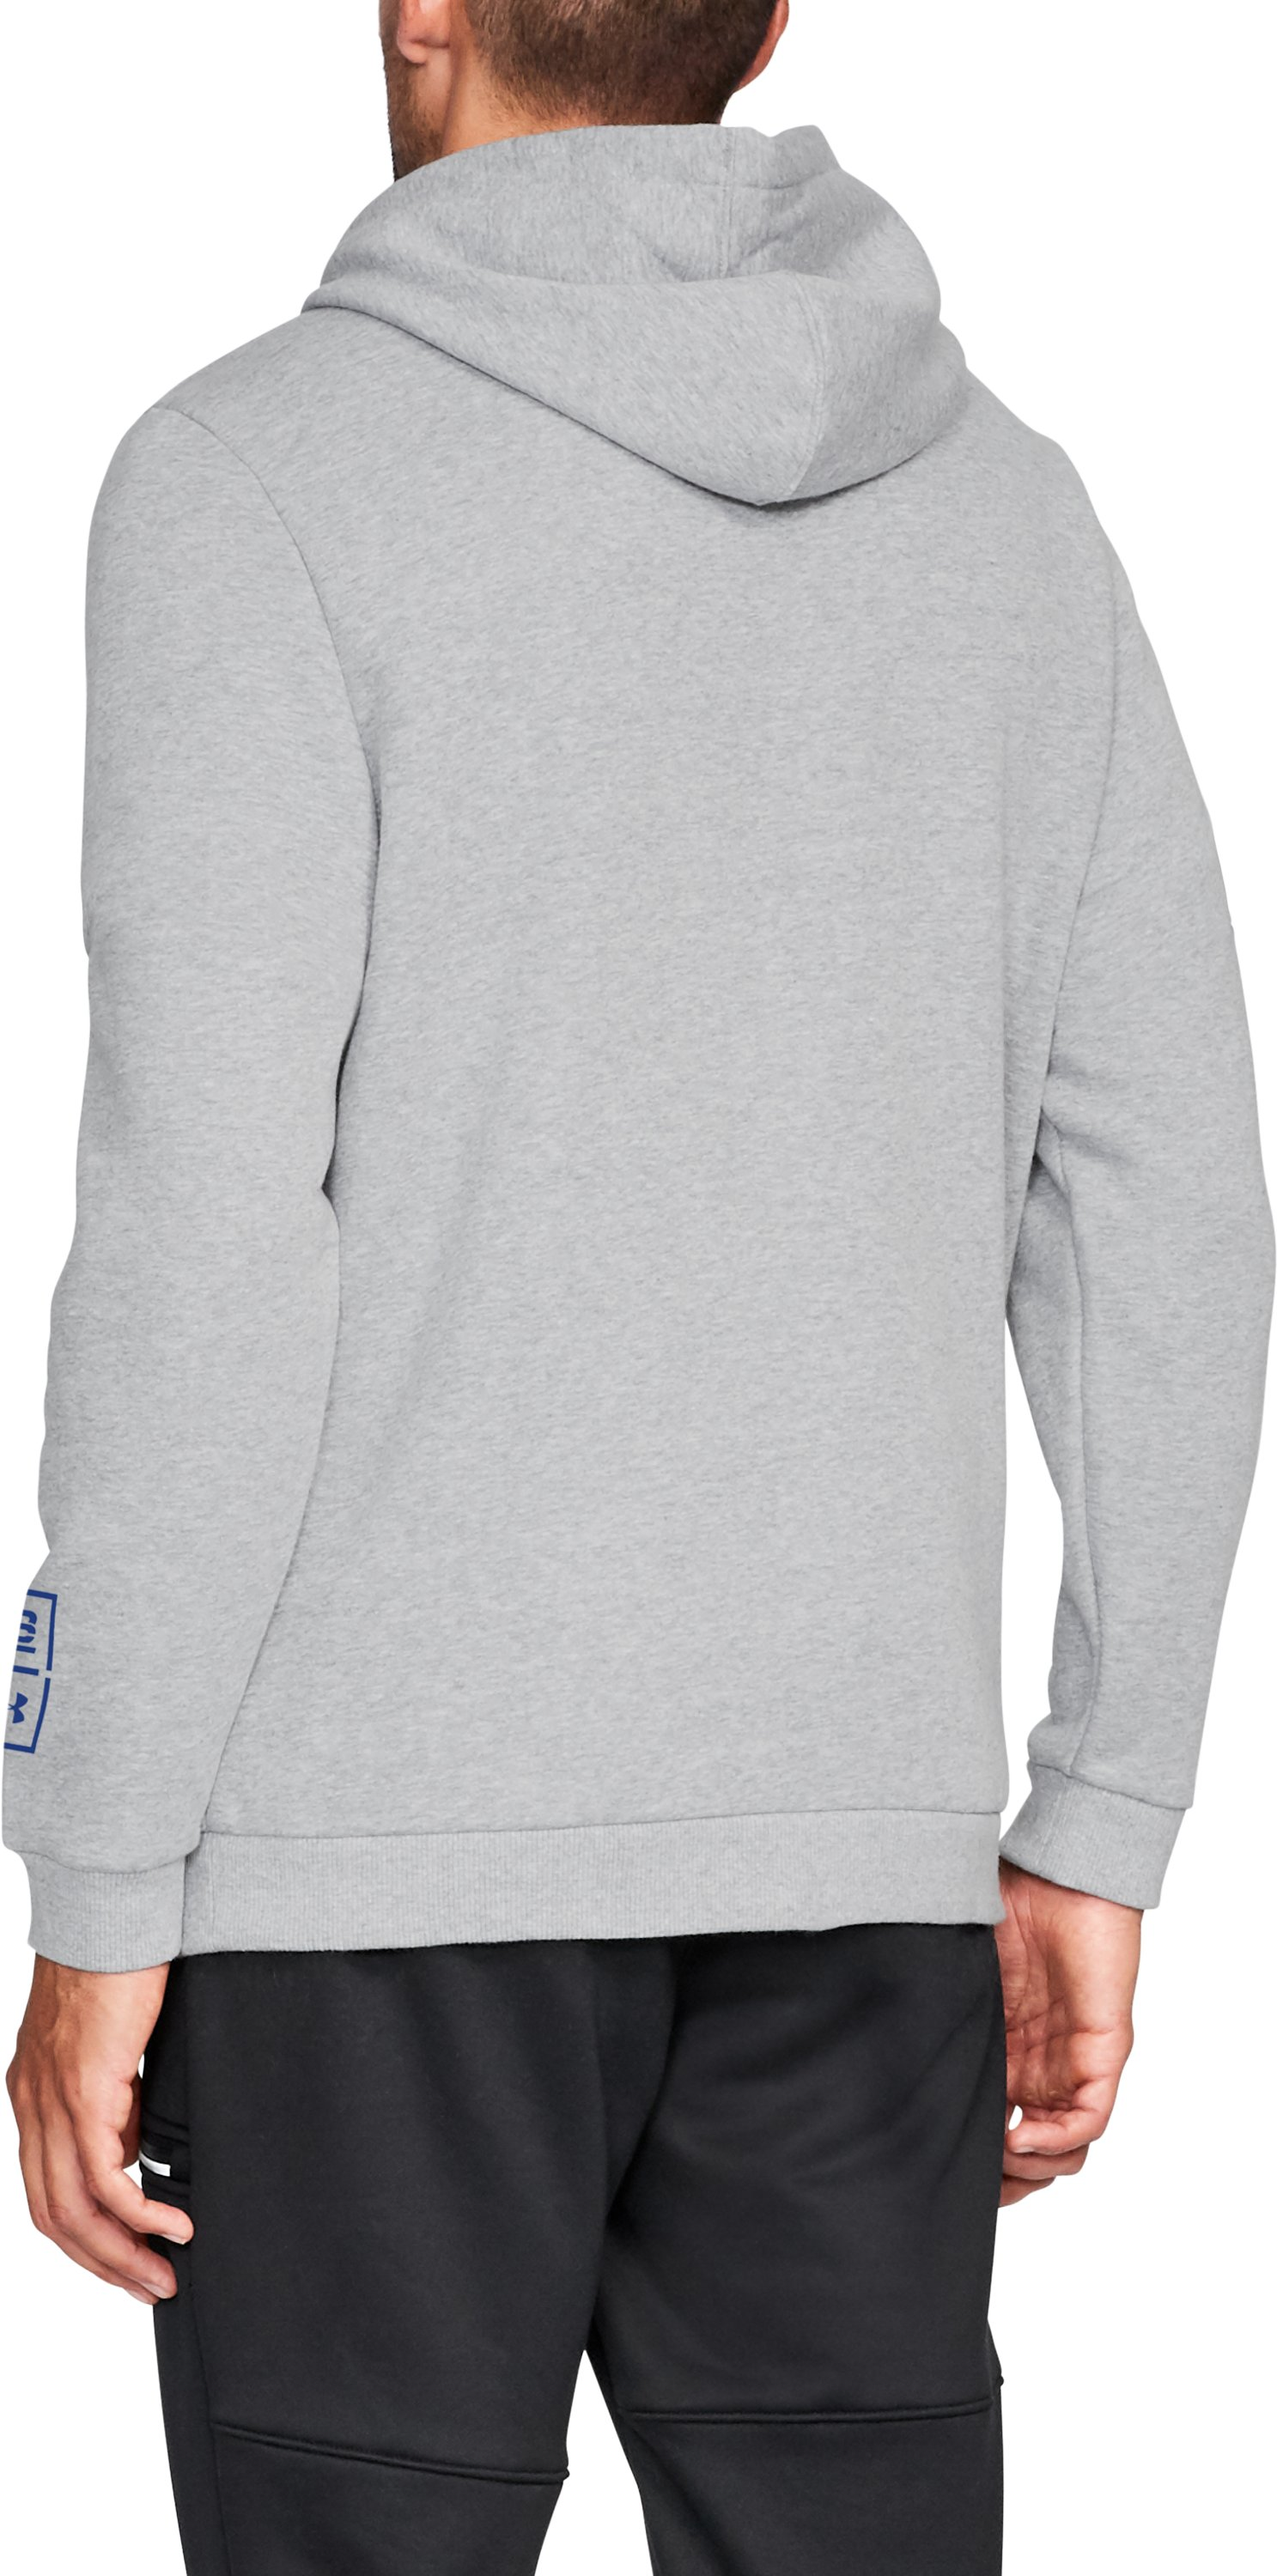 Men's TB12 199 Hoodie, STEEL LIGHT HEATHER,